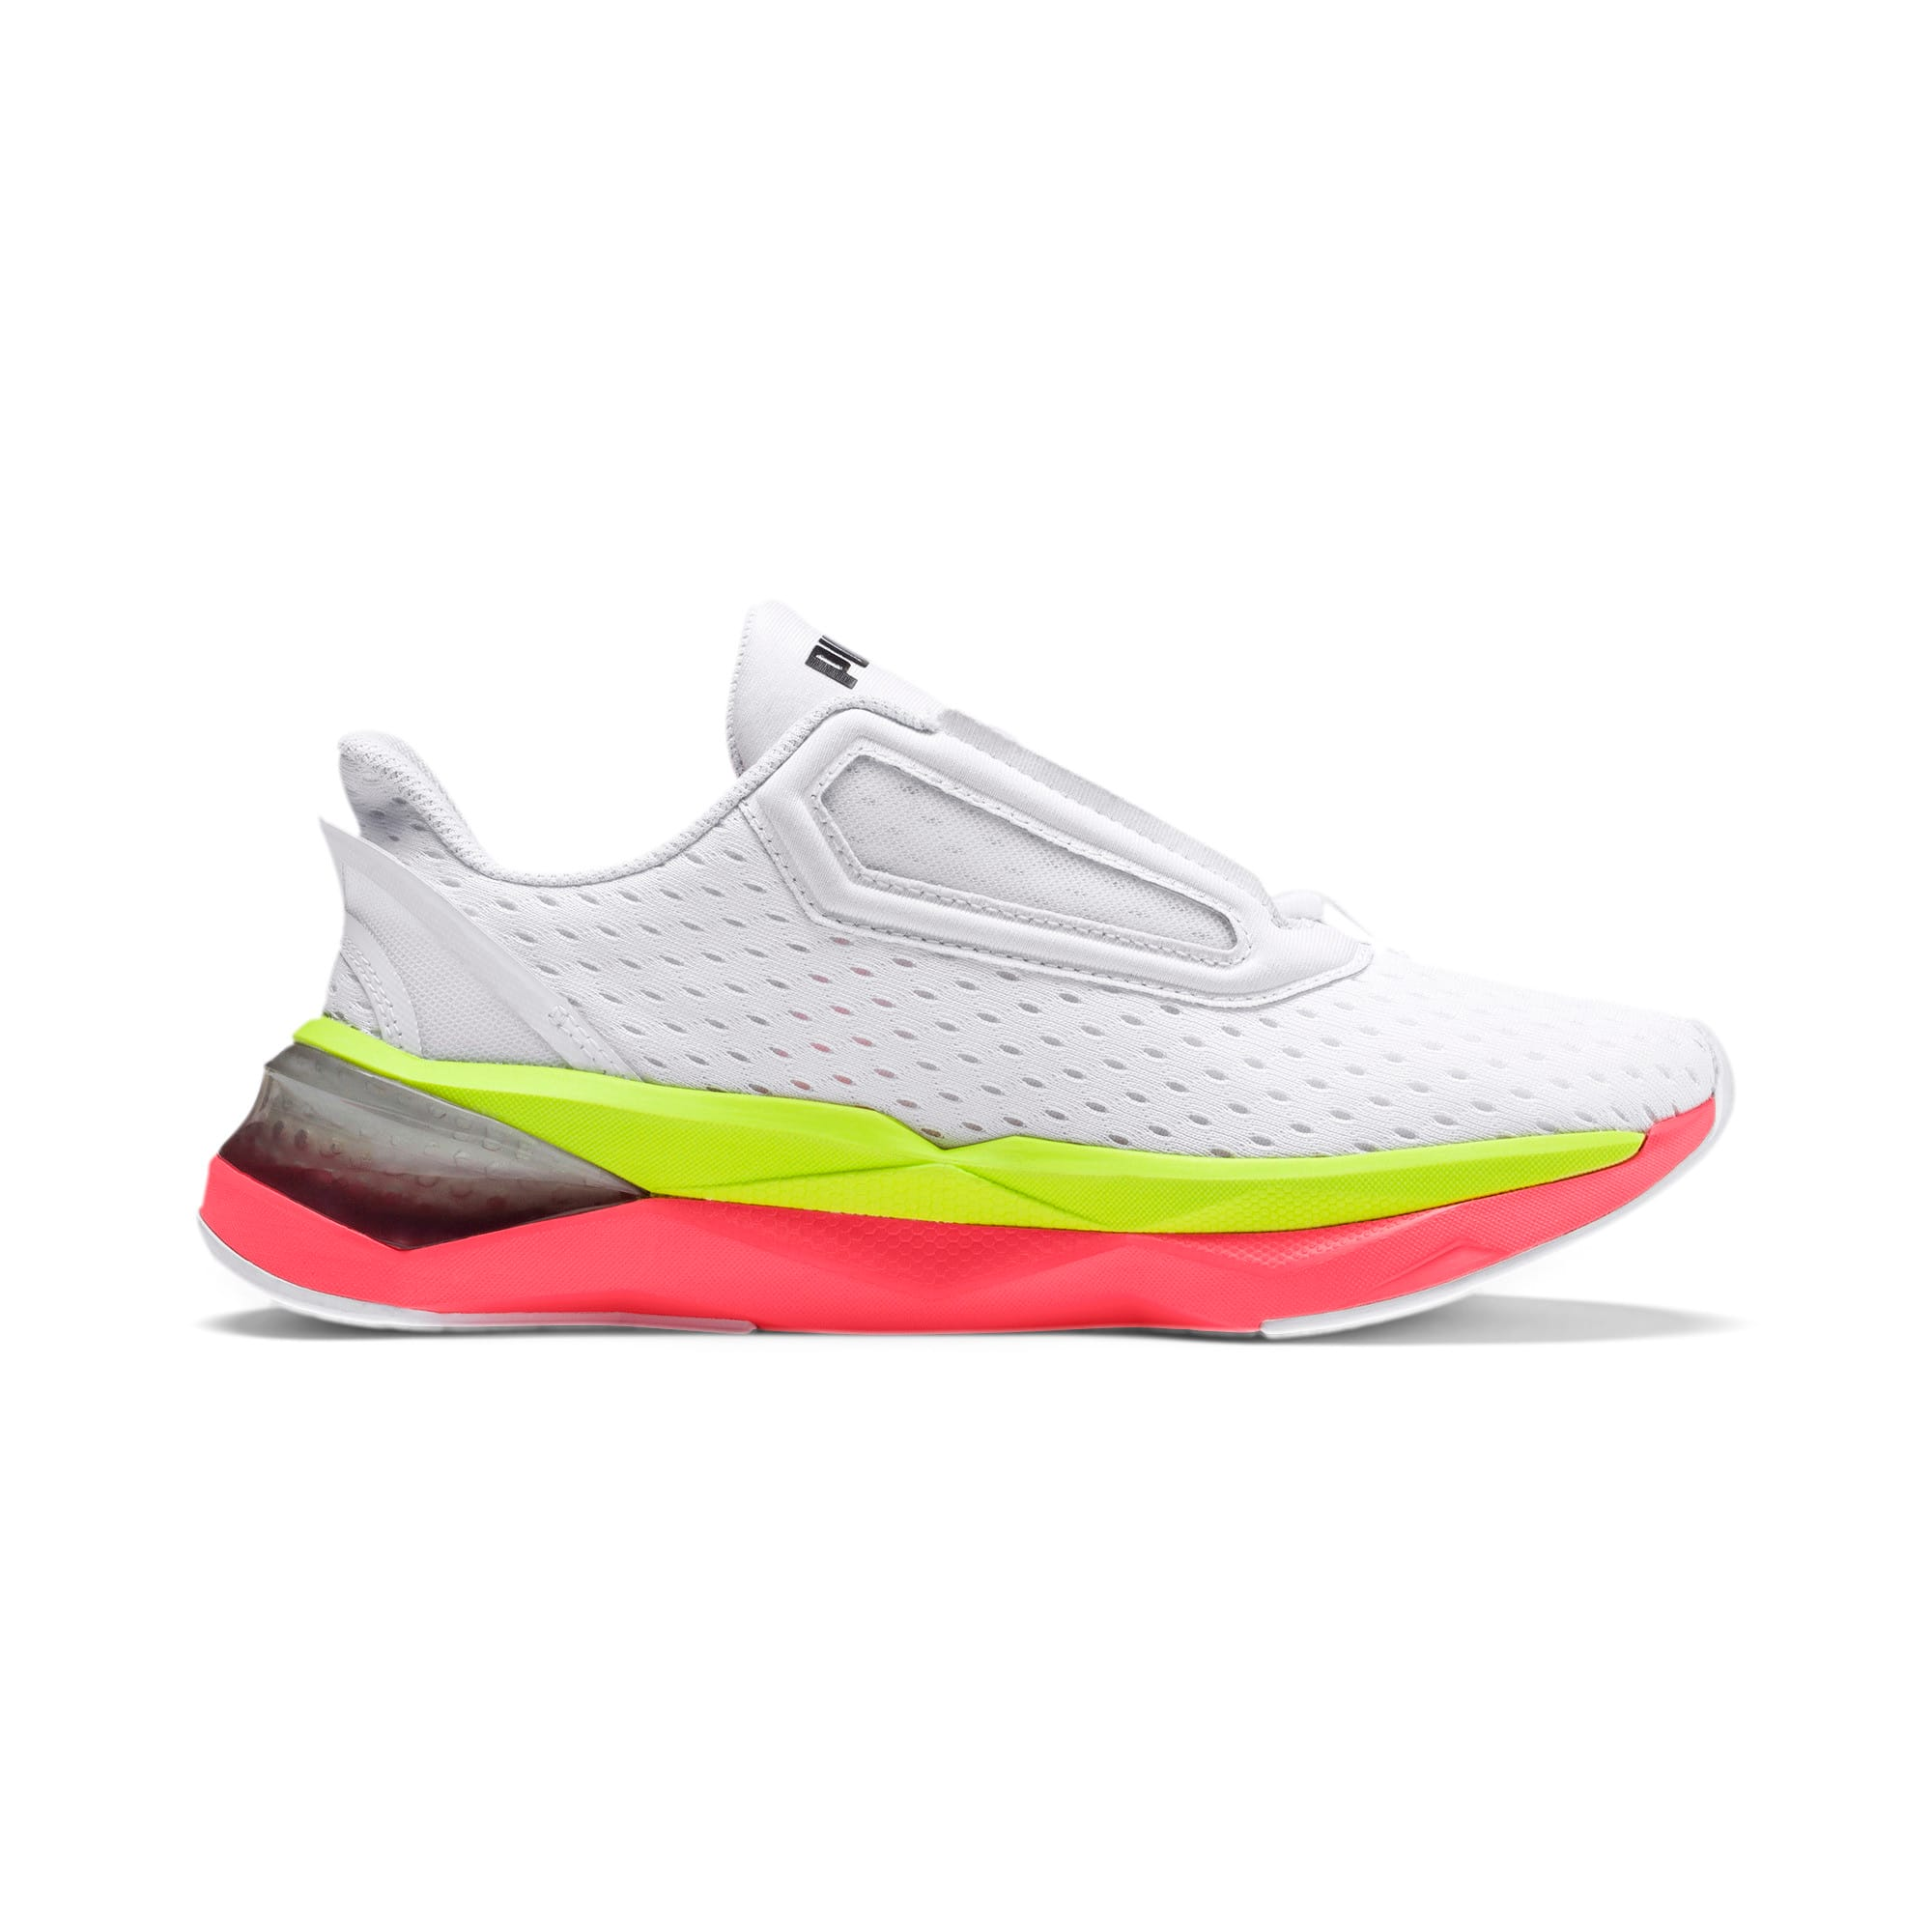 LQDCELL Shatter XT Women's Training Shoes, Puma White-Pink Alert, large